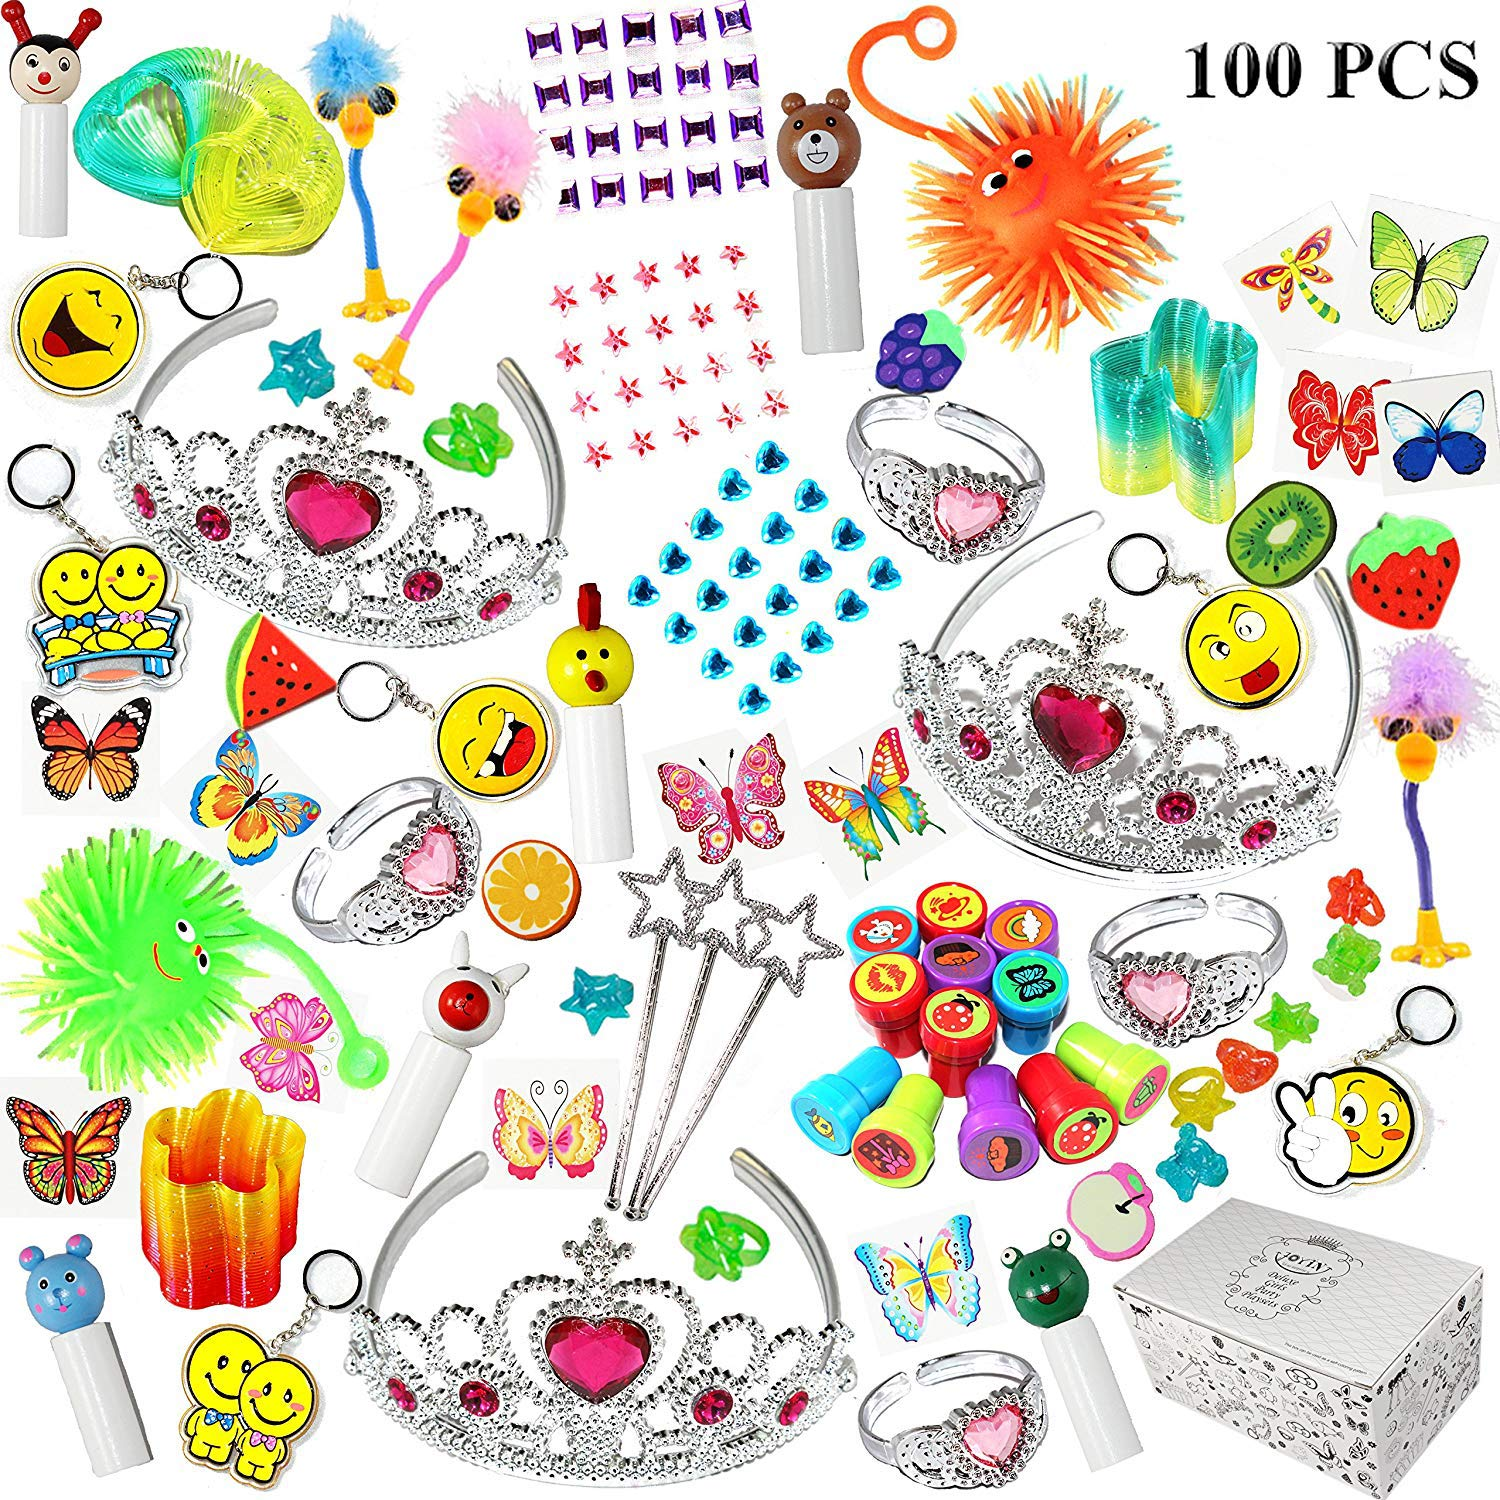 Joyin Toy 100 Pc Party Favor Toy Assortment for Girls, Party Favor for kids, Birthday Party Supplies, School Classroom Rewards, Carnival Prizes, Pinata Fillers, Stocking Stuffers